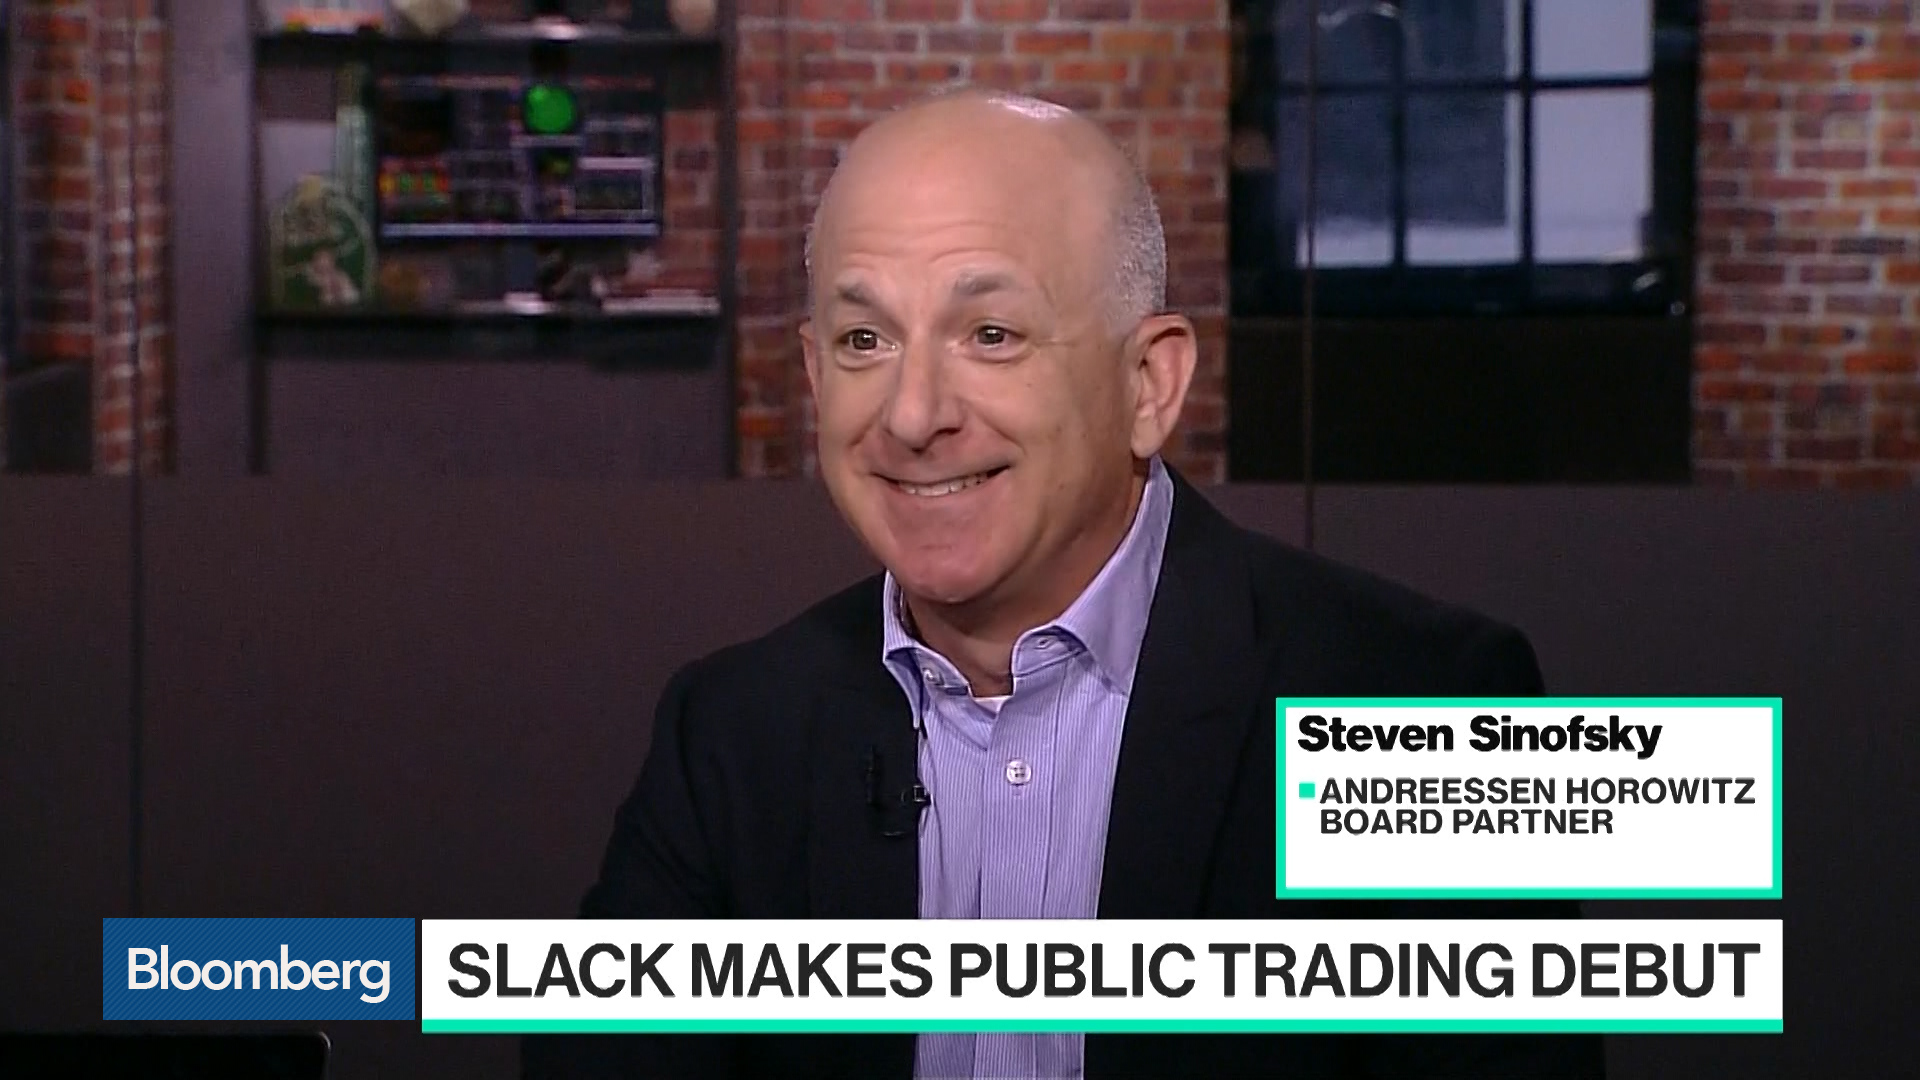 Slack Is In a Great Position After Direct Listing, Says Steven Sinofsky